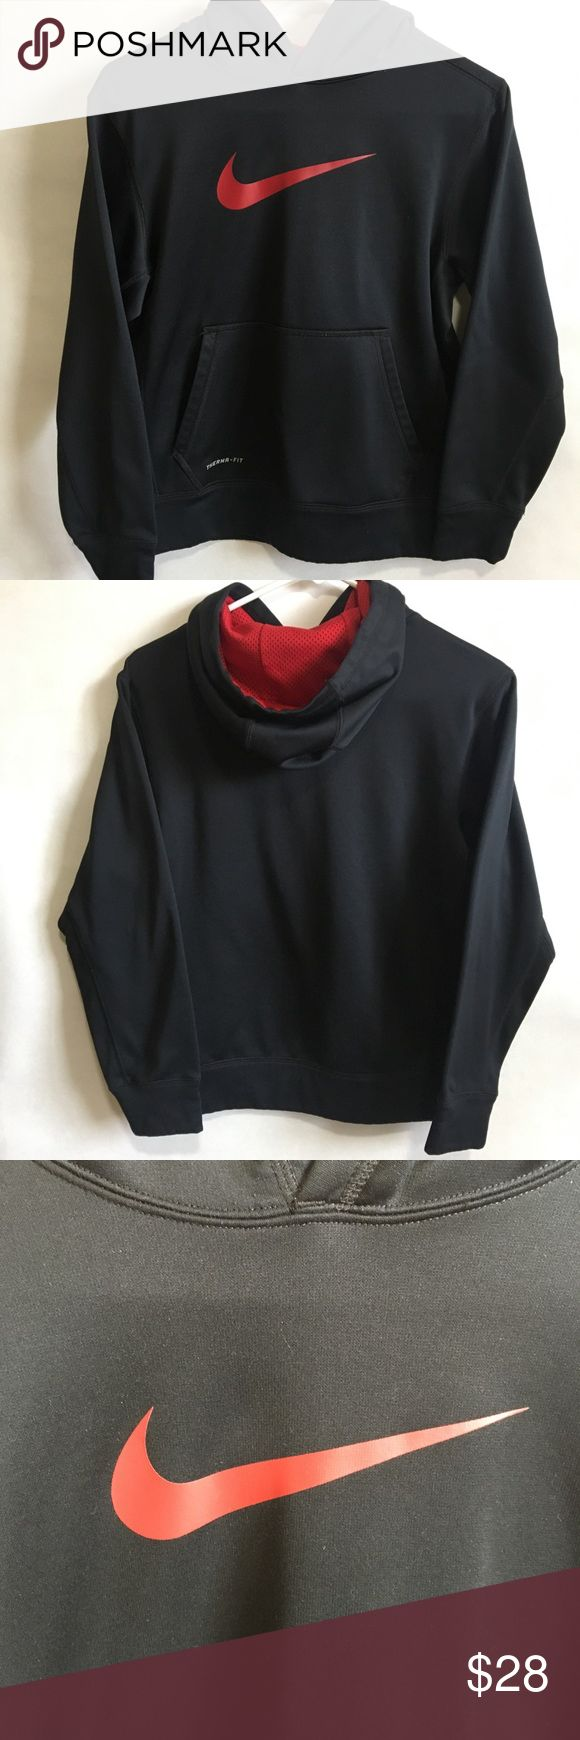 Nike Hoodie Black and red Nike hoodie.  Large front pocket.  Excellent condition.  No snags, holes or marks.  Therma-fit. Nike Shirts & Tops Sweatshirts & Hoodies